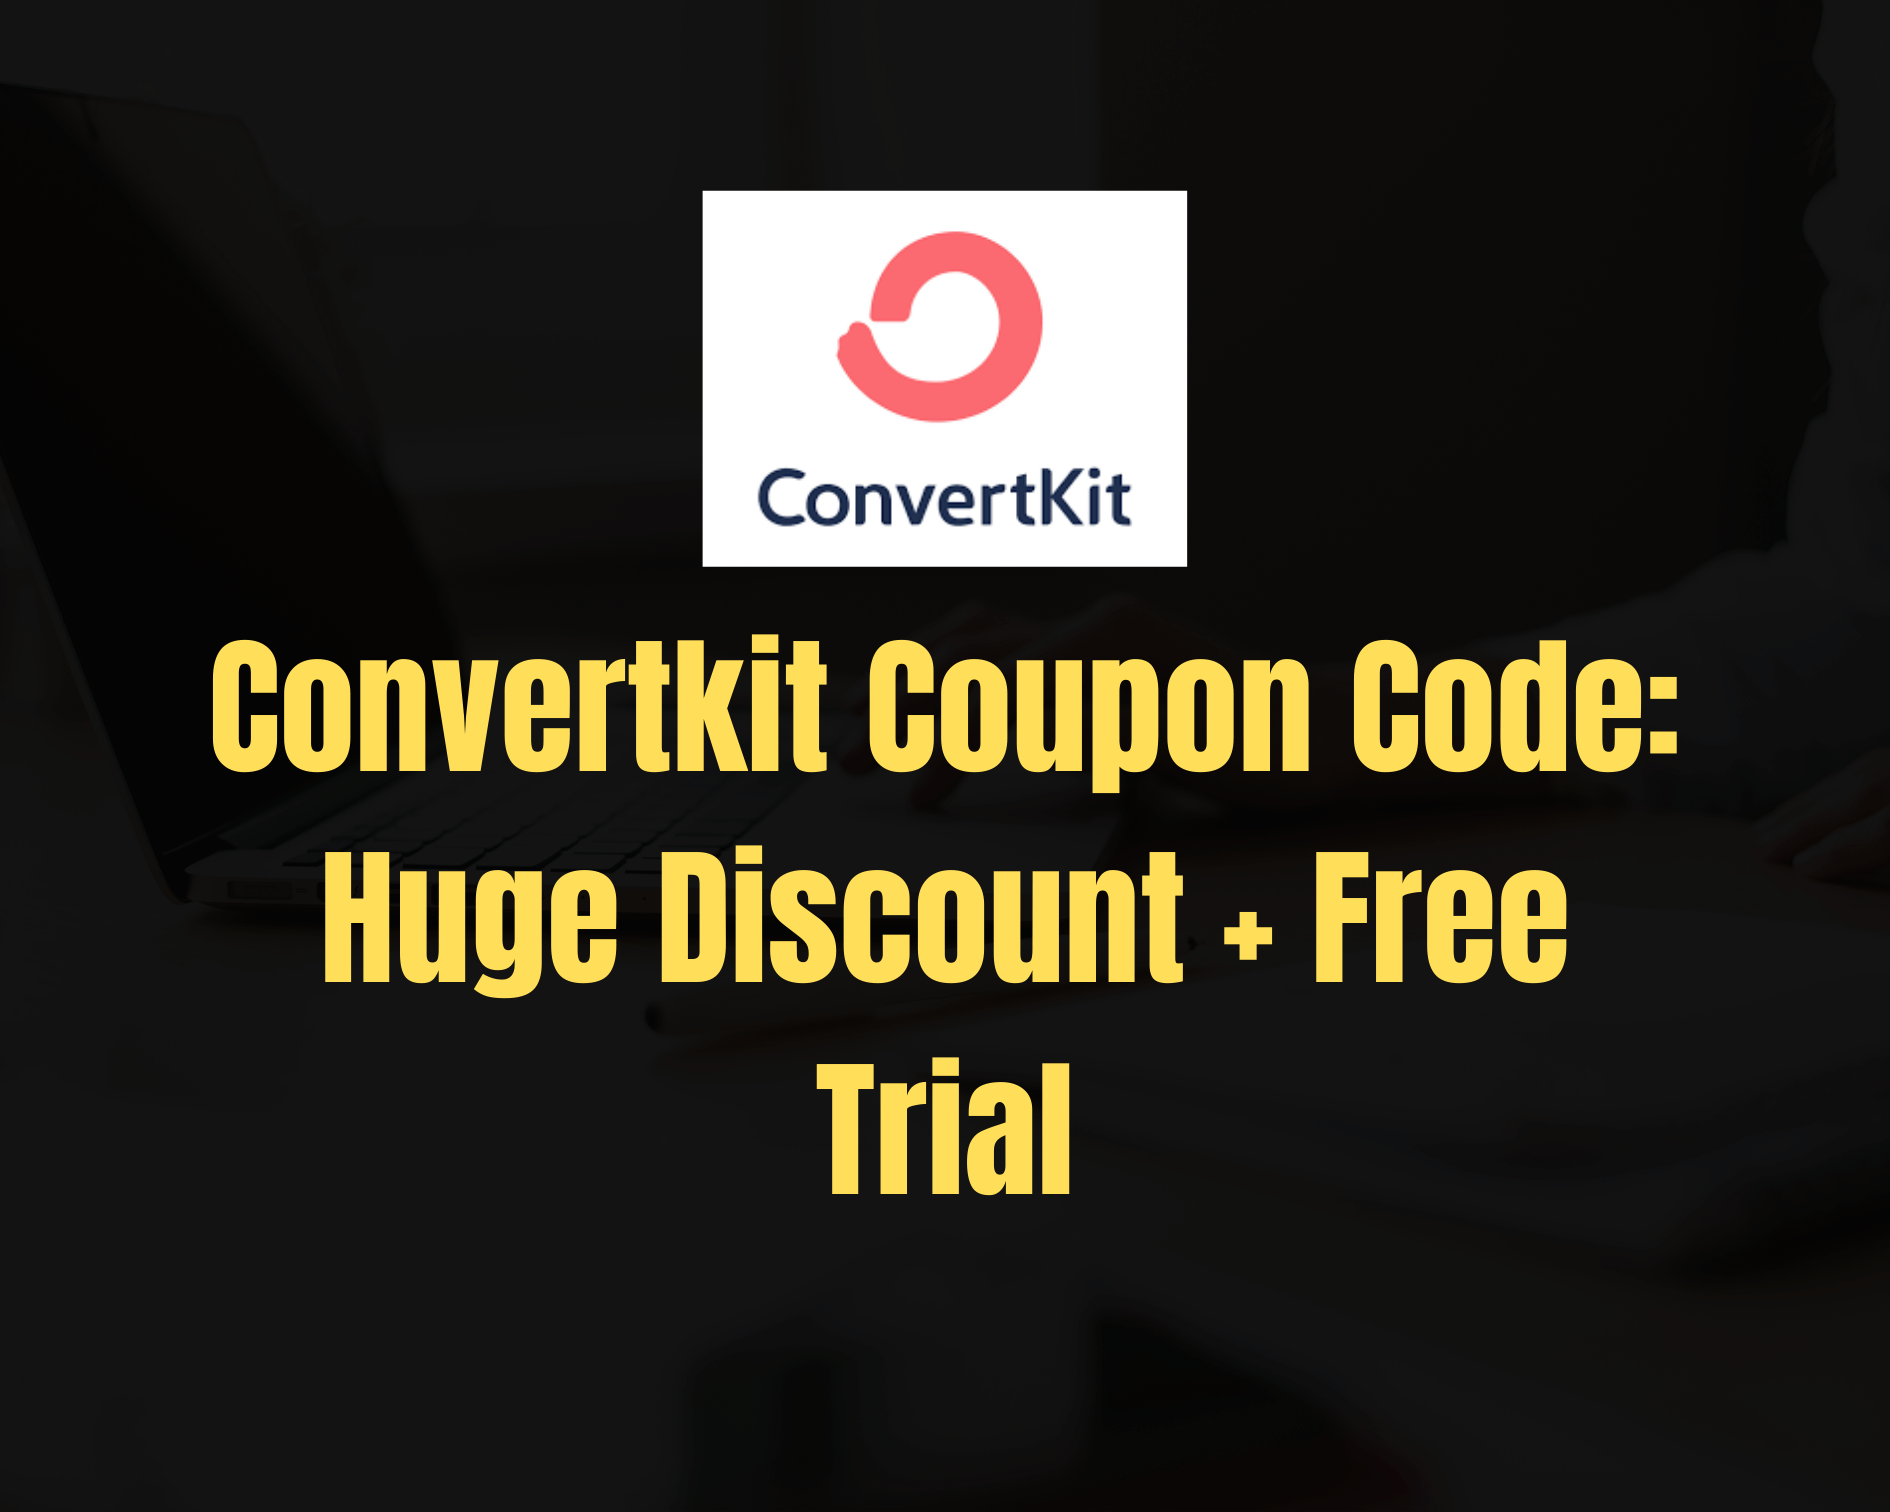 Convertkit Coupon Code 2021: 17% OFF + 14 Days Free Trial